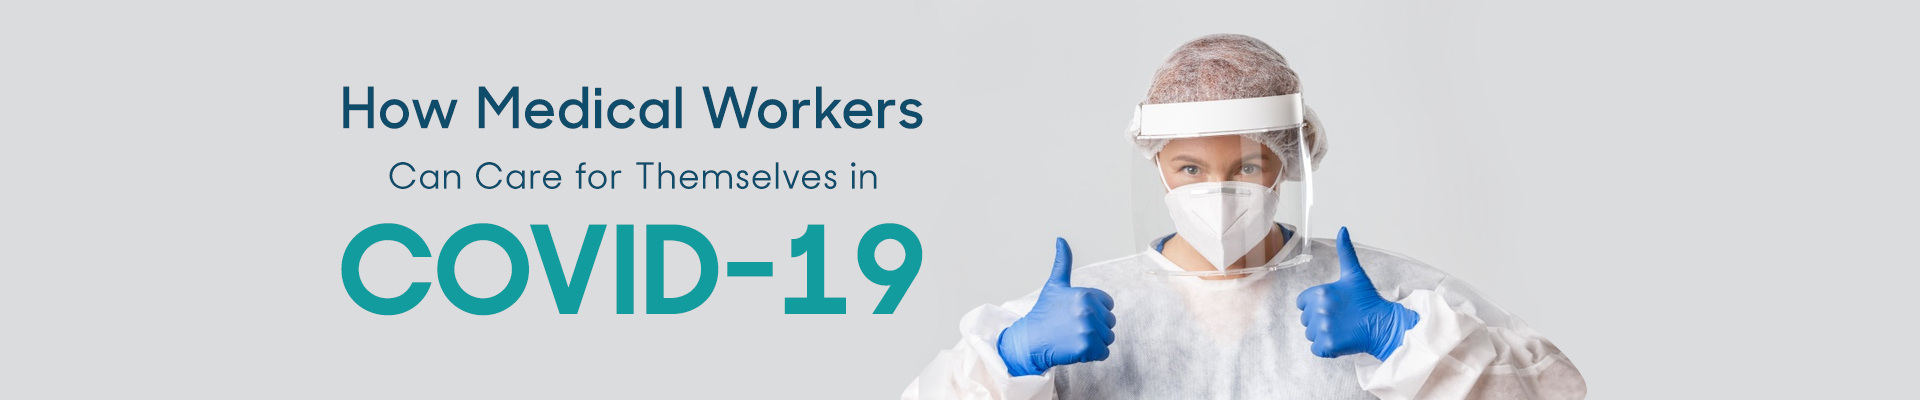 How Medical Workers Can Care For Themselves In COVID-19